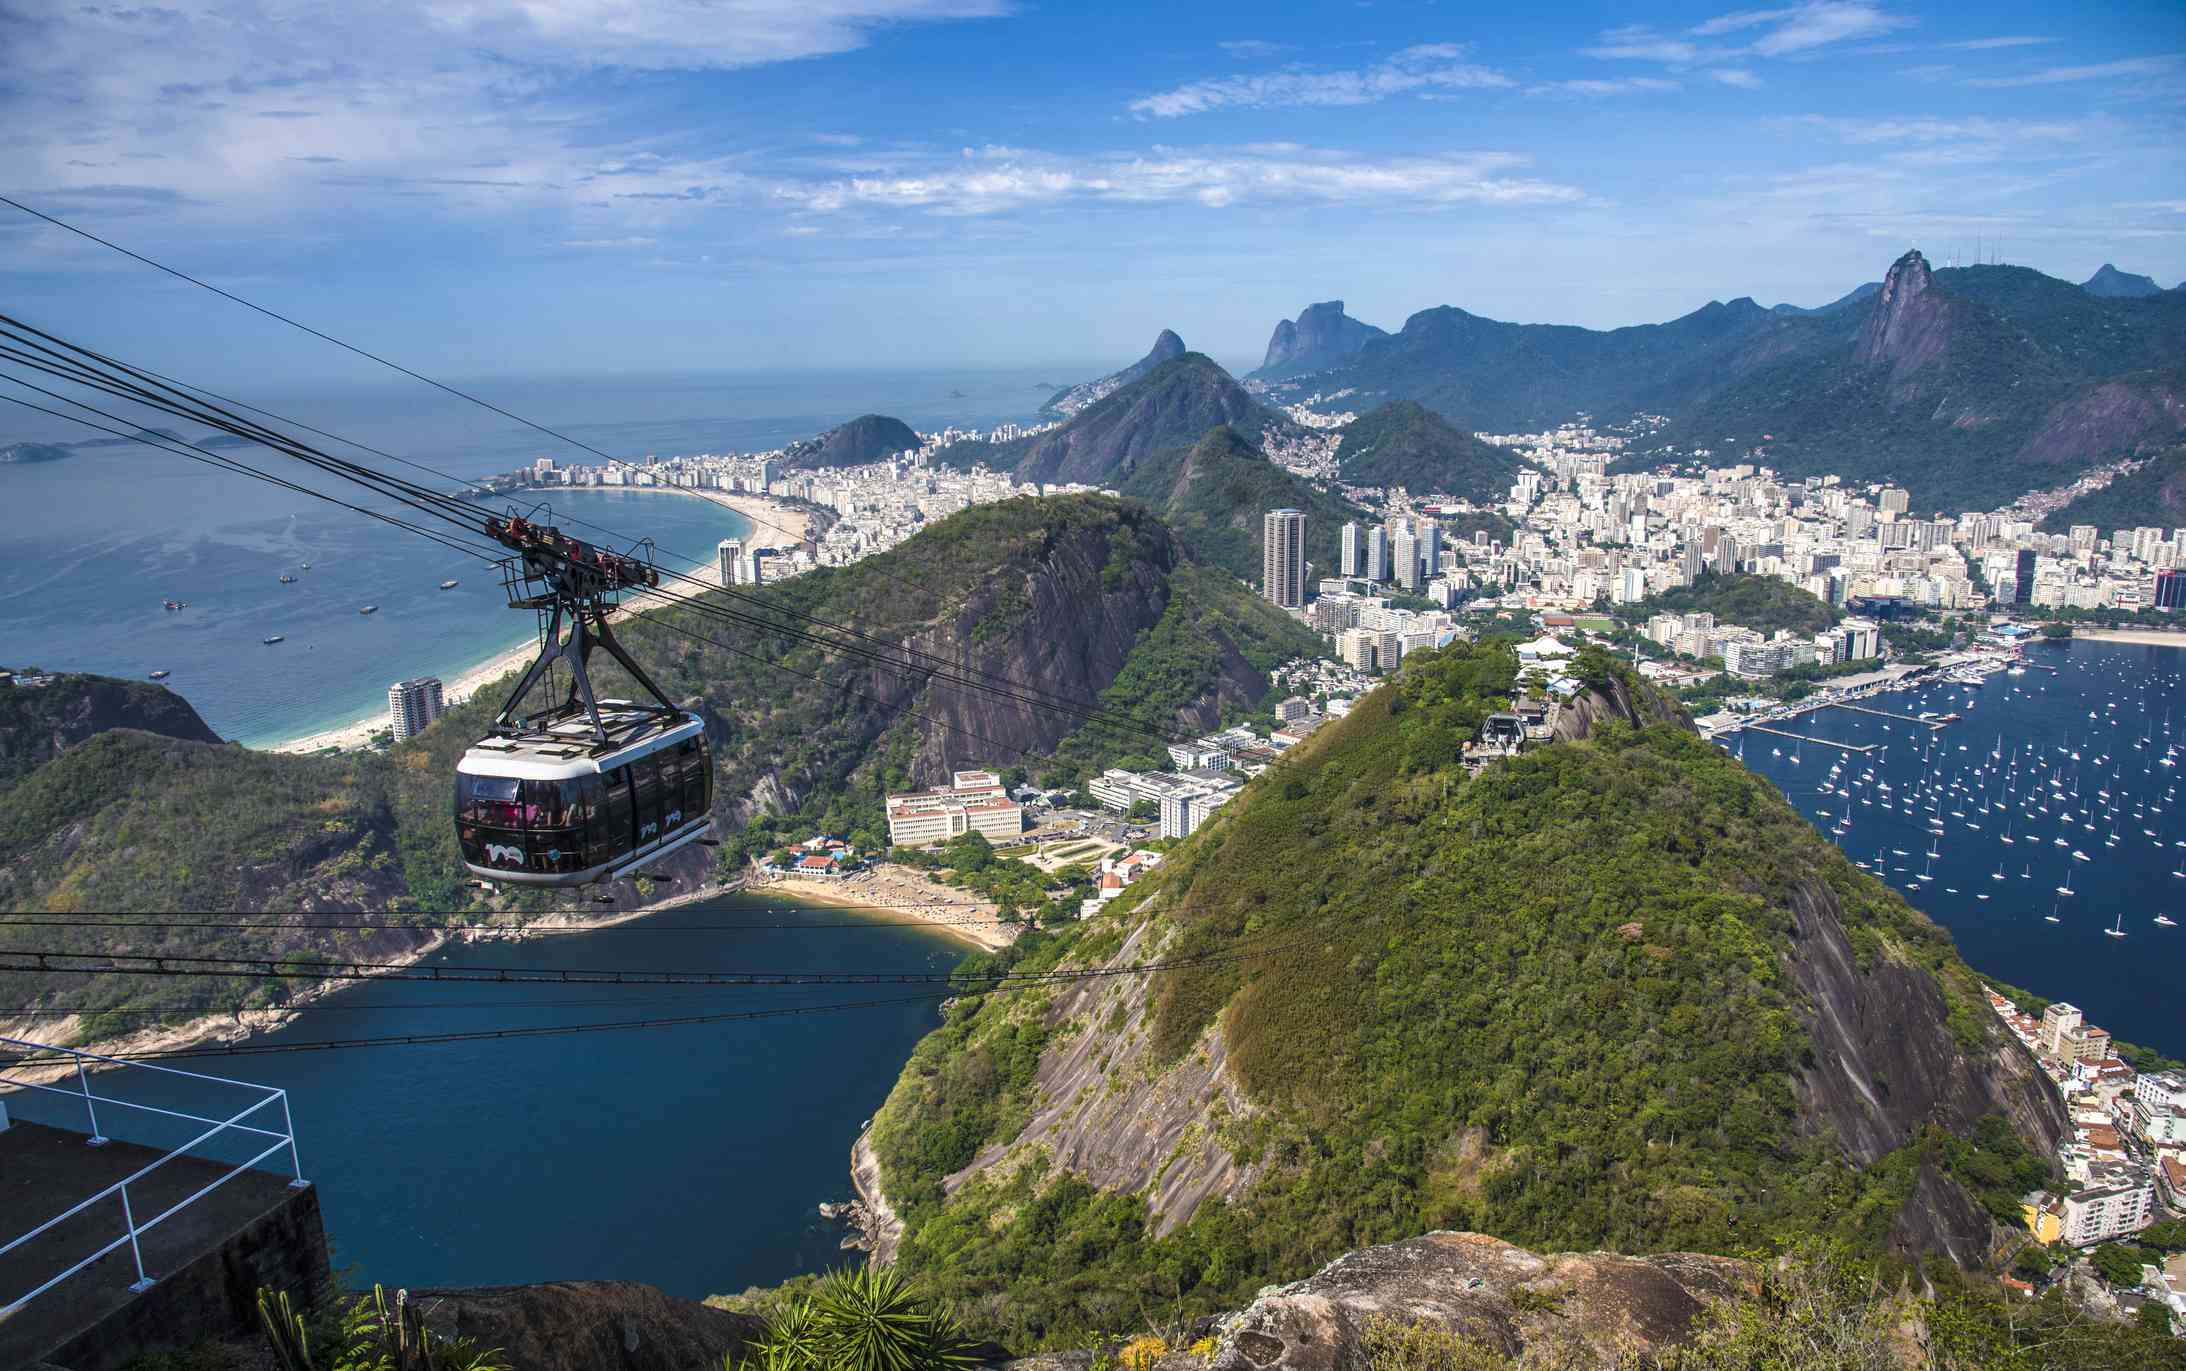 Aerial view of Rio de Janeiro from Sugarloaf Mountain